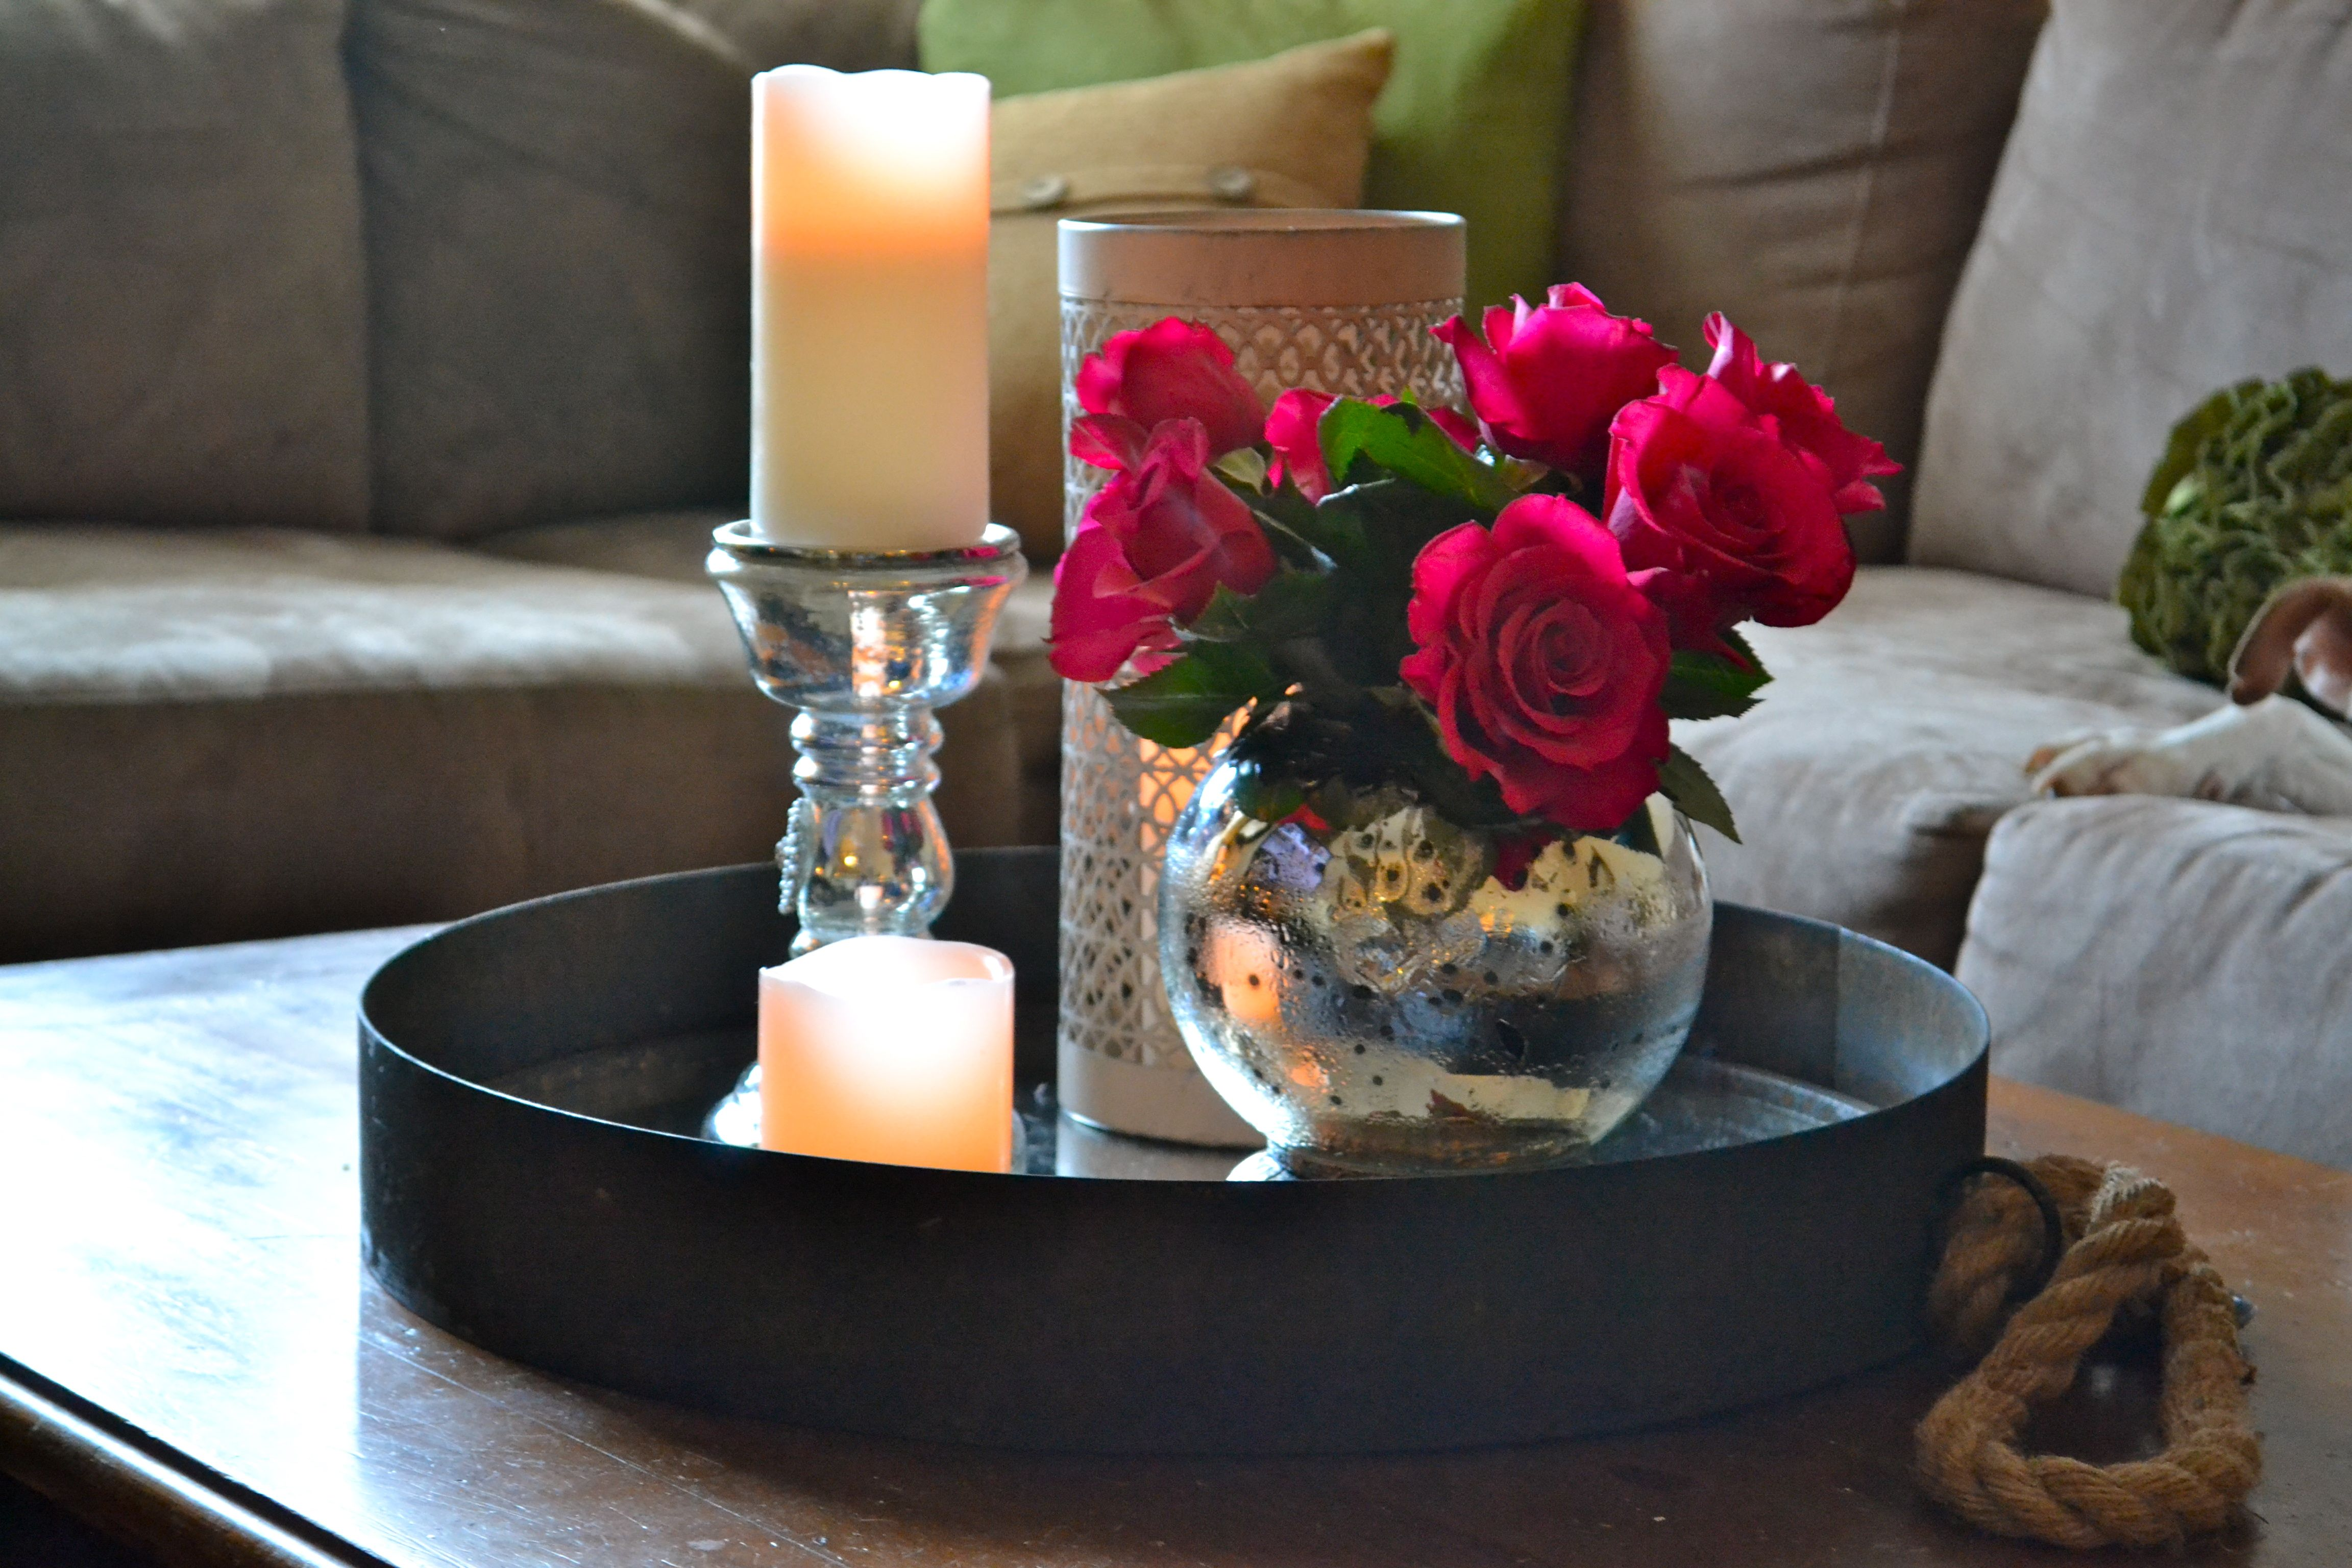 Beautiful red rose in globe glass vase and silver candle holder on